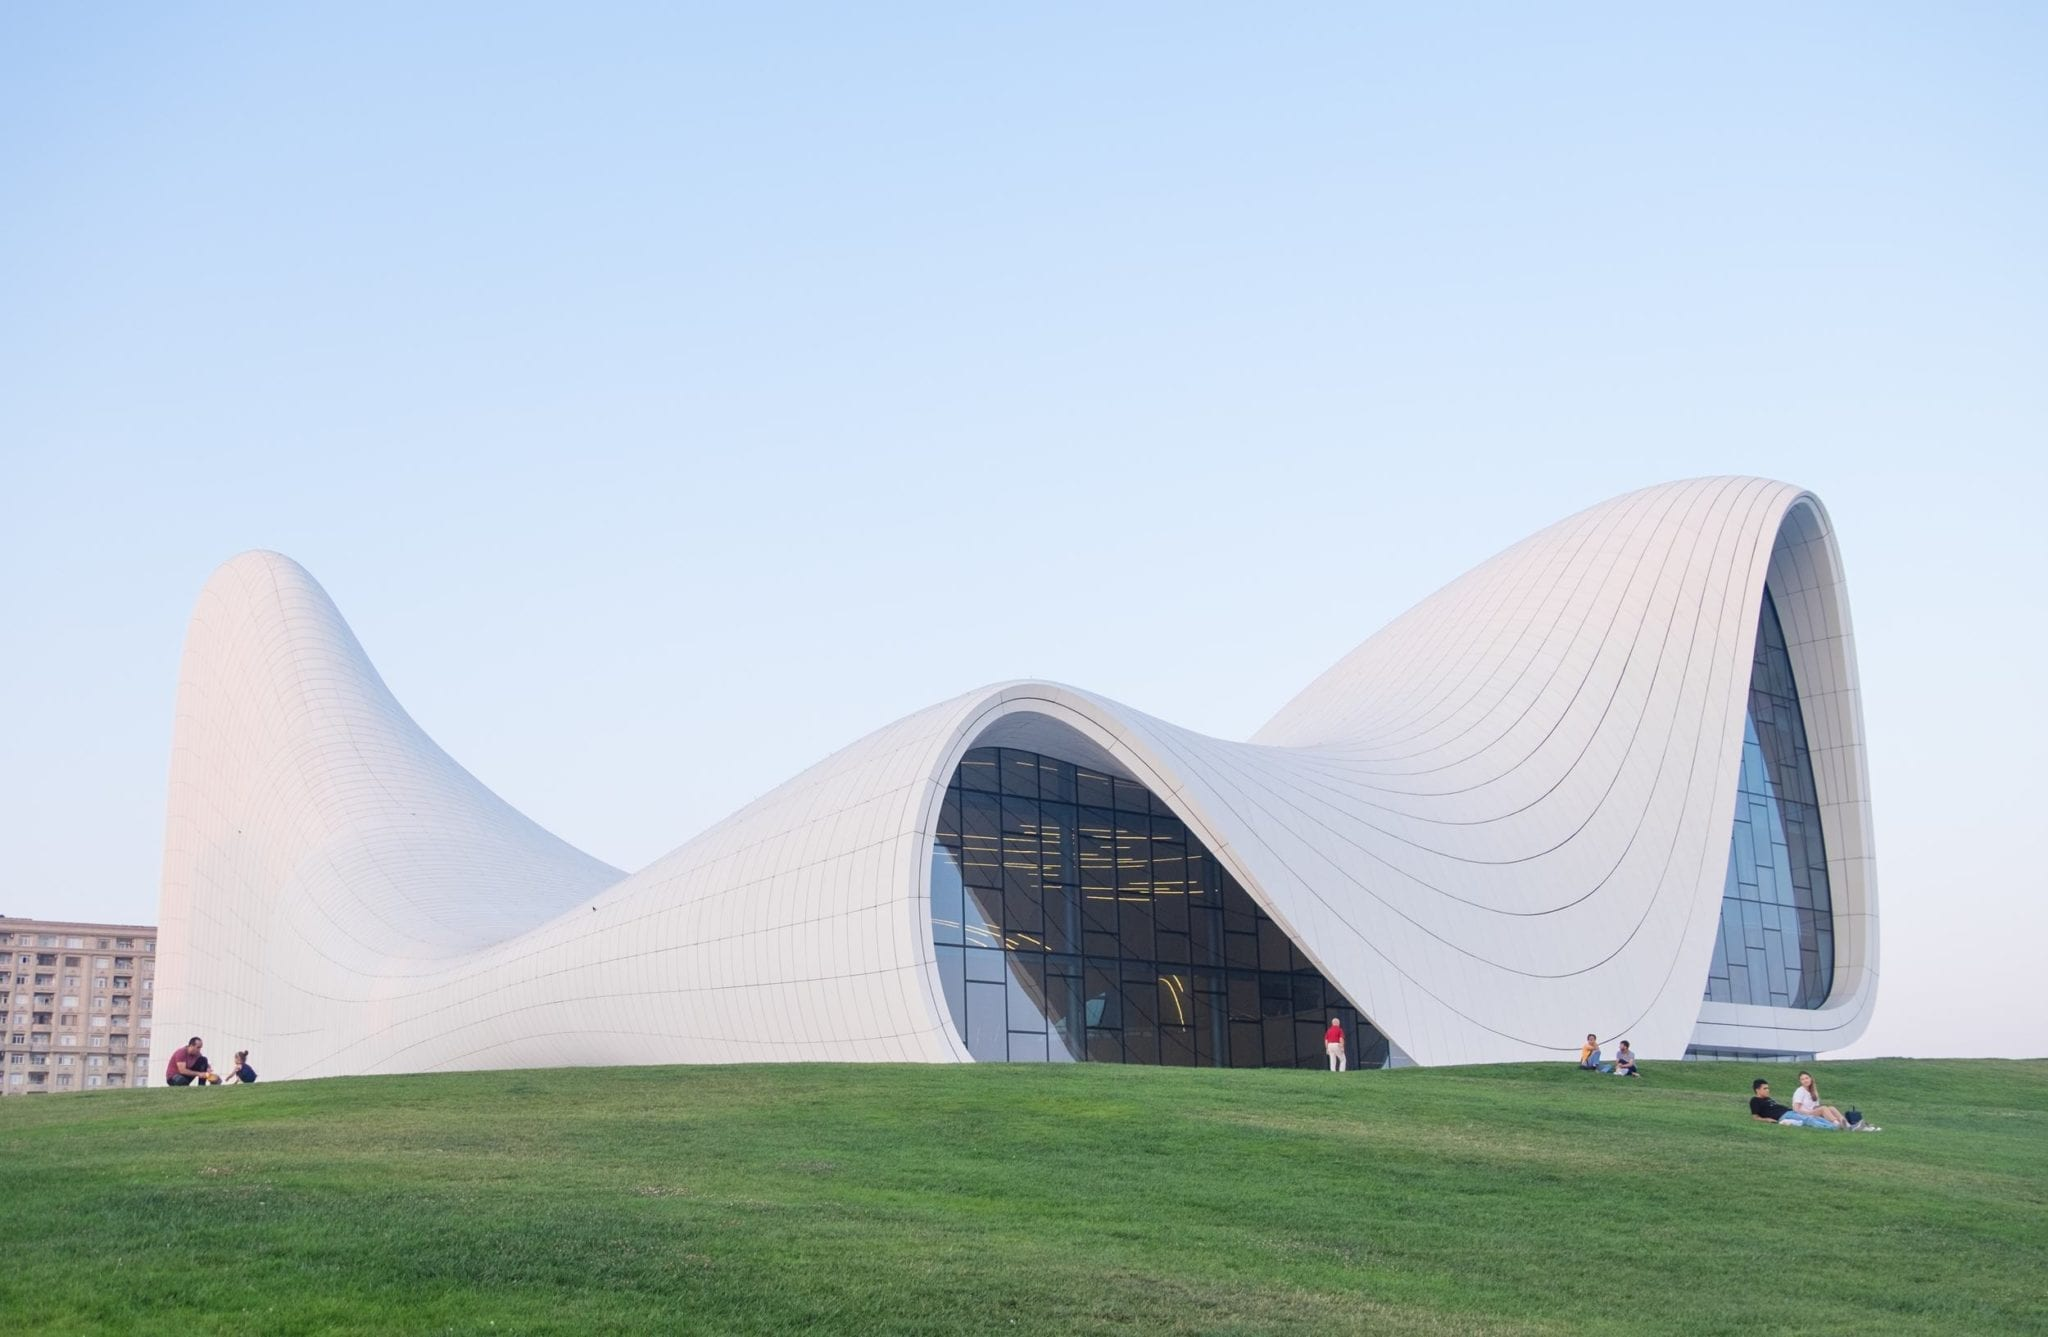 The swooping white curves of the modern Heydar Alivev Center, with people sitting on the grass in front of it.